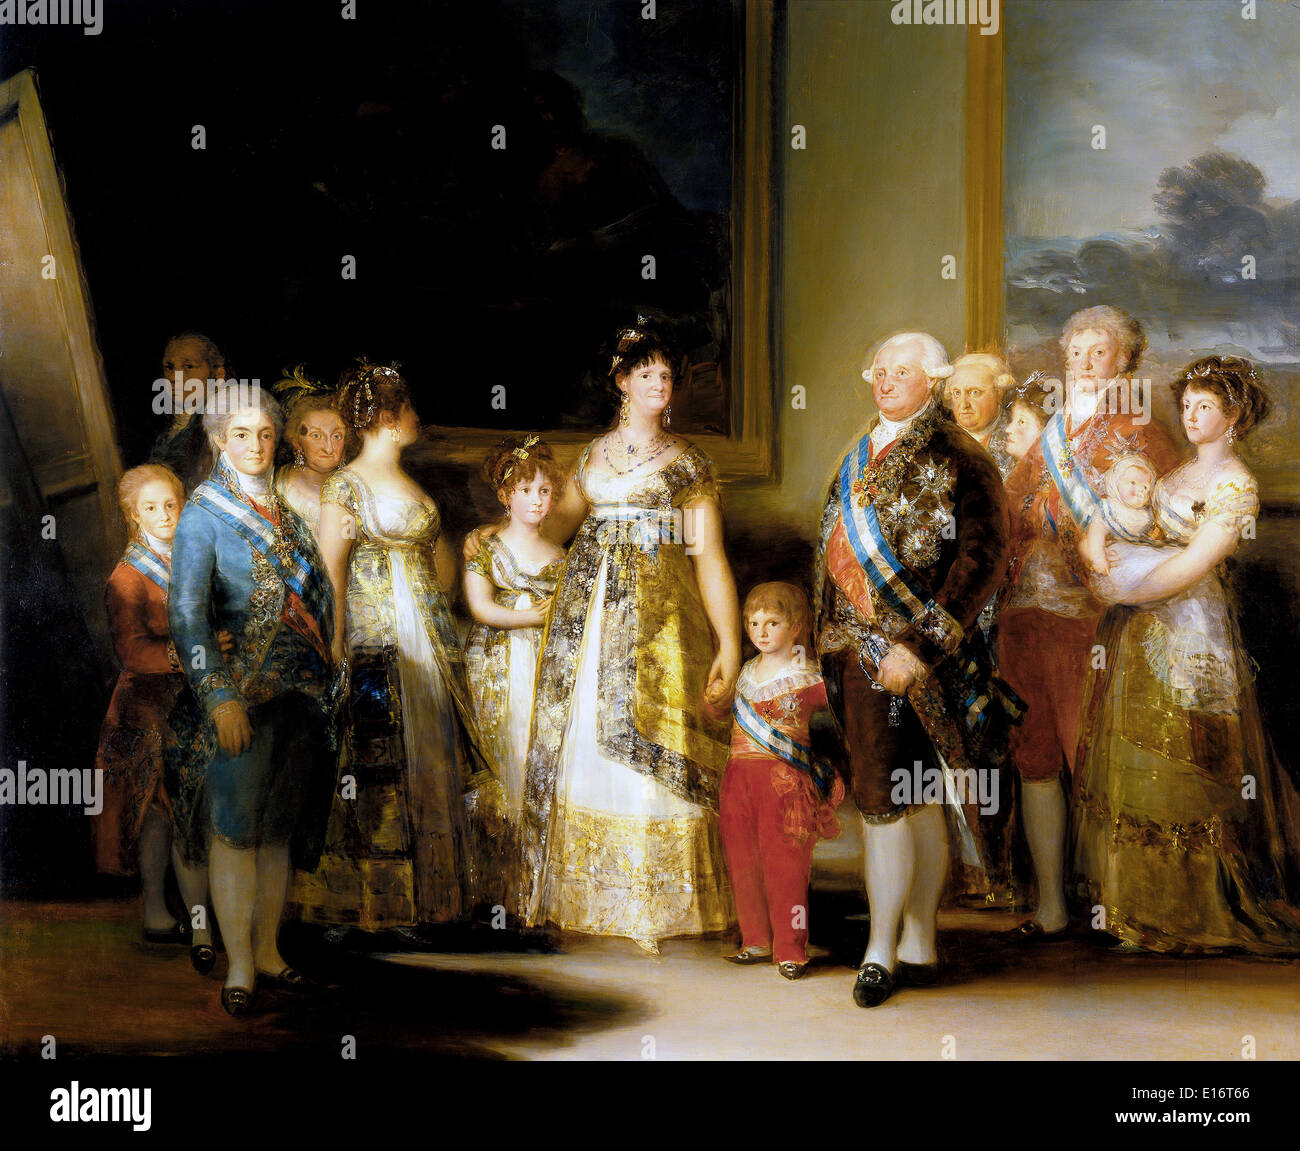 Charles IV of Spain and His Family by Francisco de Goya, 1800 - Stock Image